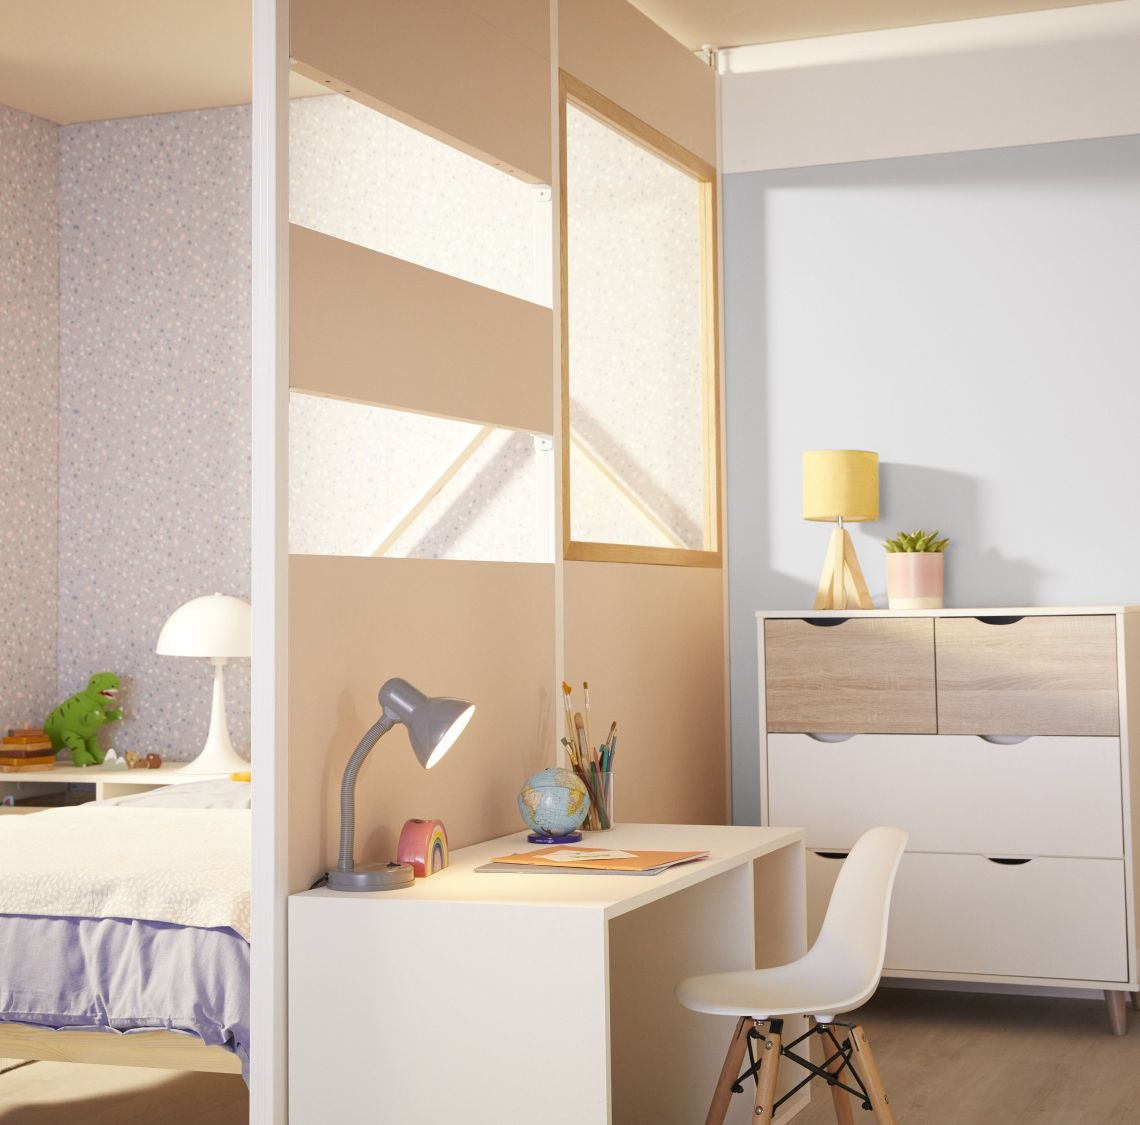 B Q Launches Affordable Modular Room Dividers